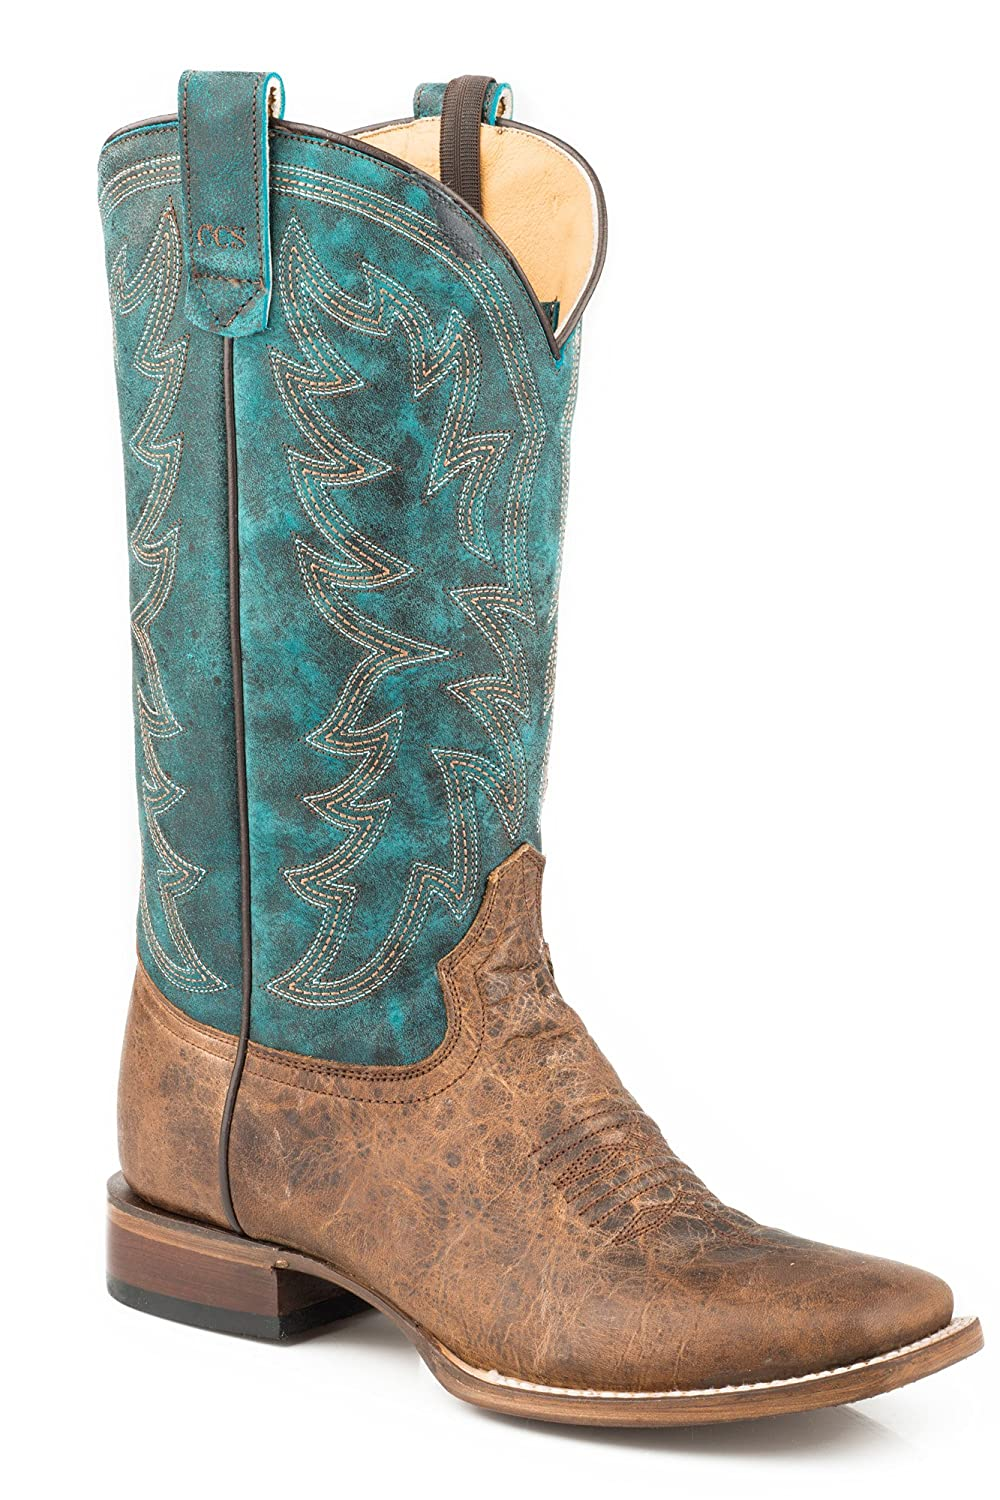 8a763282a3e Roper Ladies Sidewinder Conceal Carry Boots